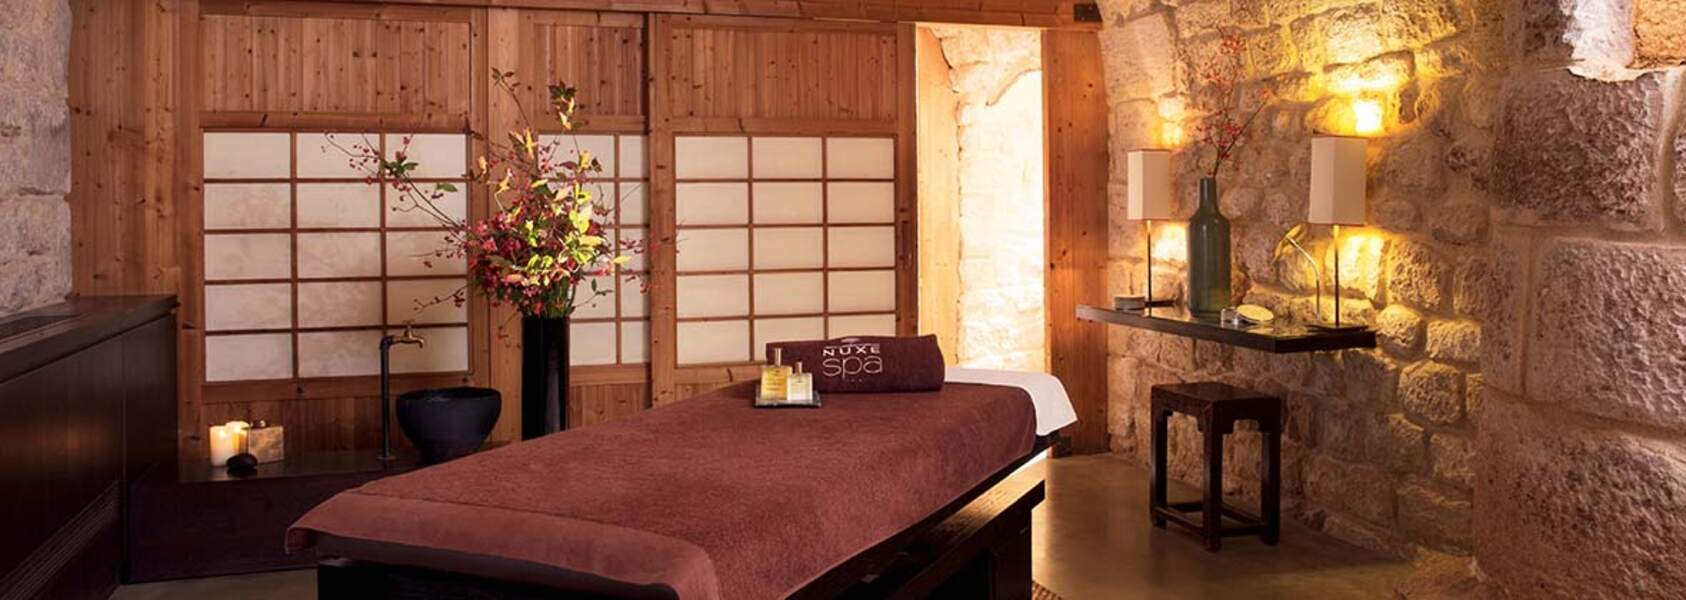 Le Spa Nuxe Paris